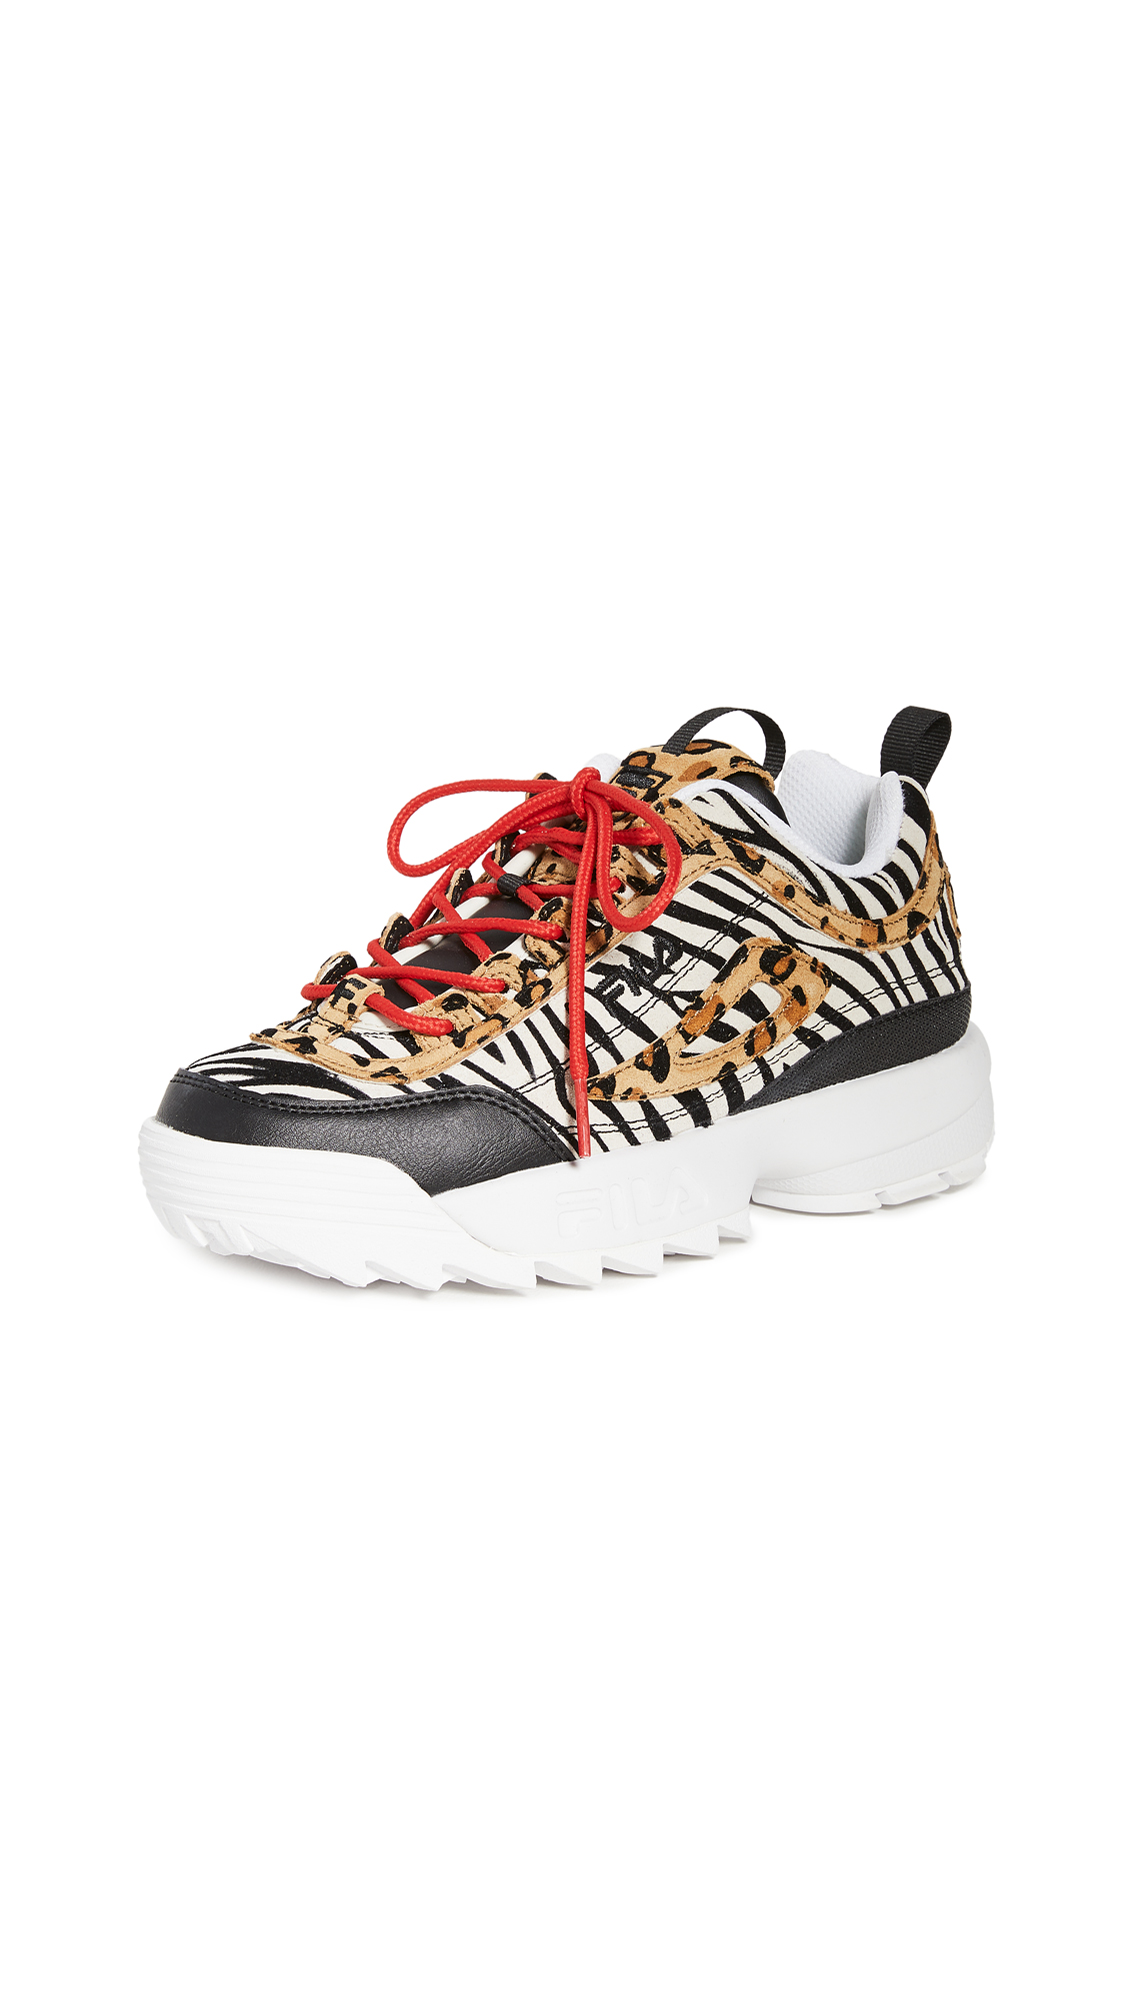 Fila Disruptor II Animal Sneakers - 40% Off Sale